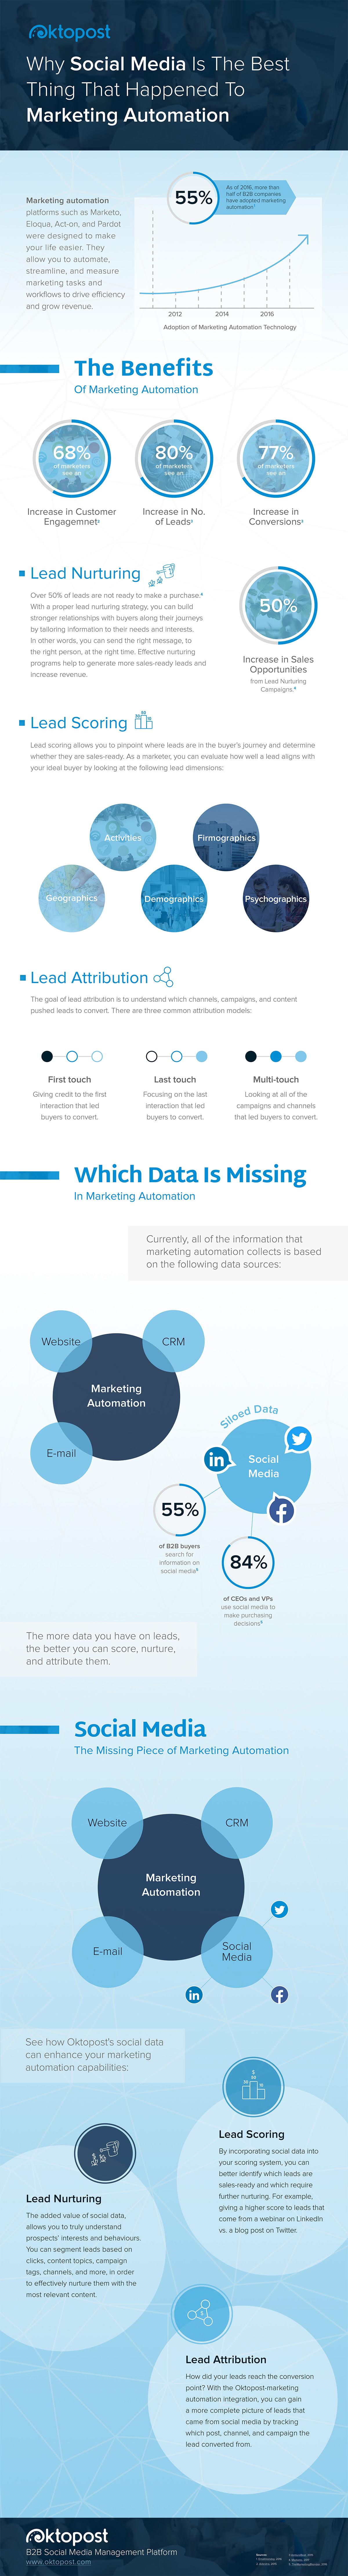 Why Social Media Is the Best Thing That Happened to Marketing Automation #Infographic